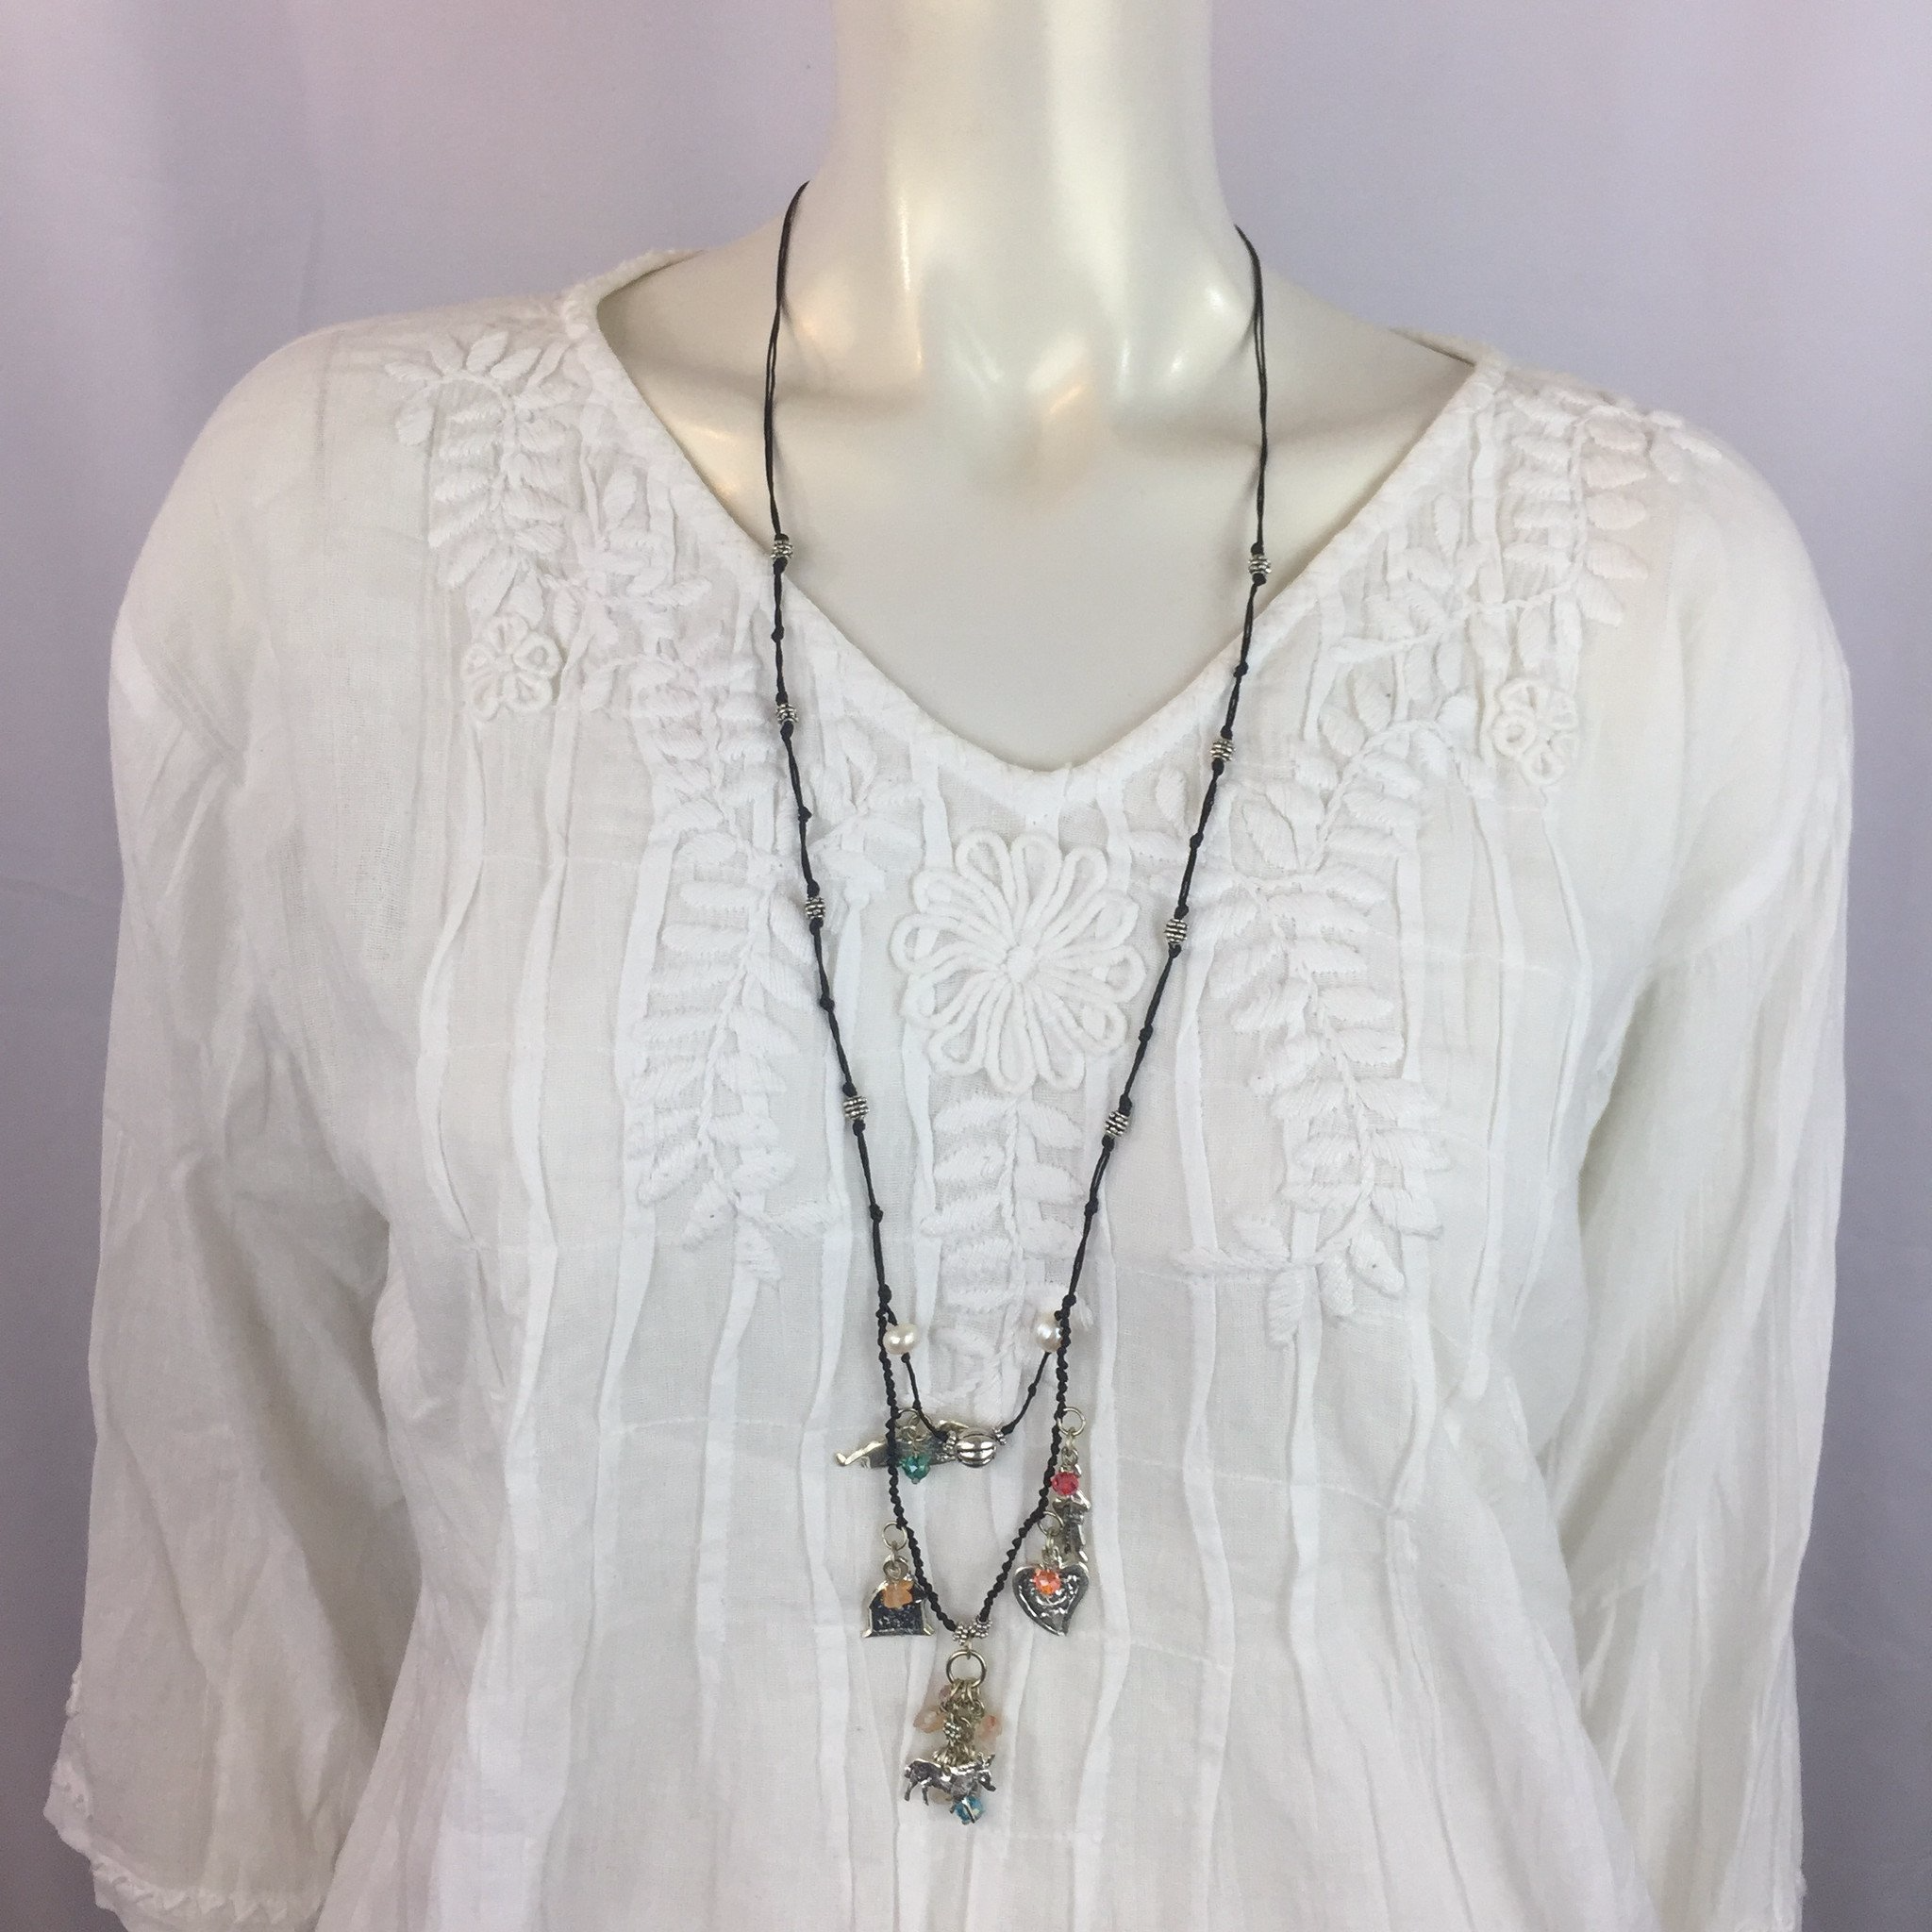 Soledad milagro necklace